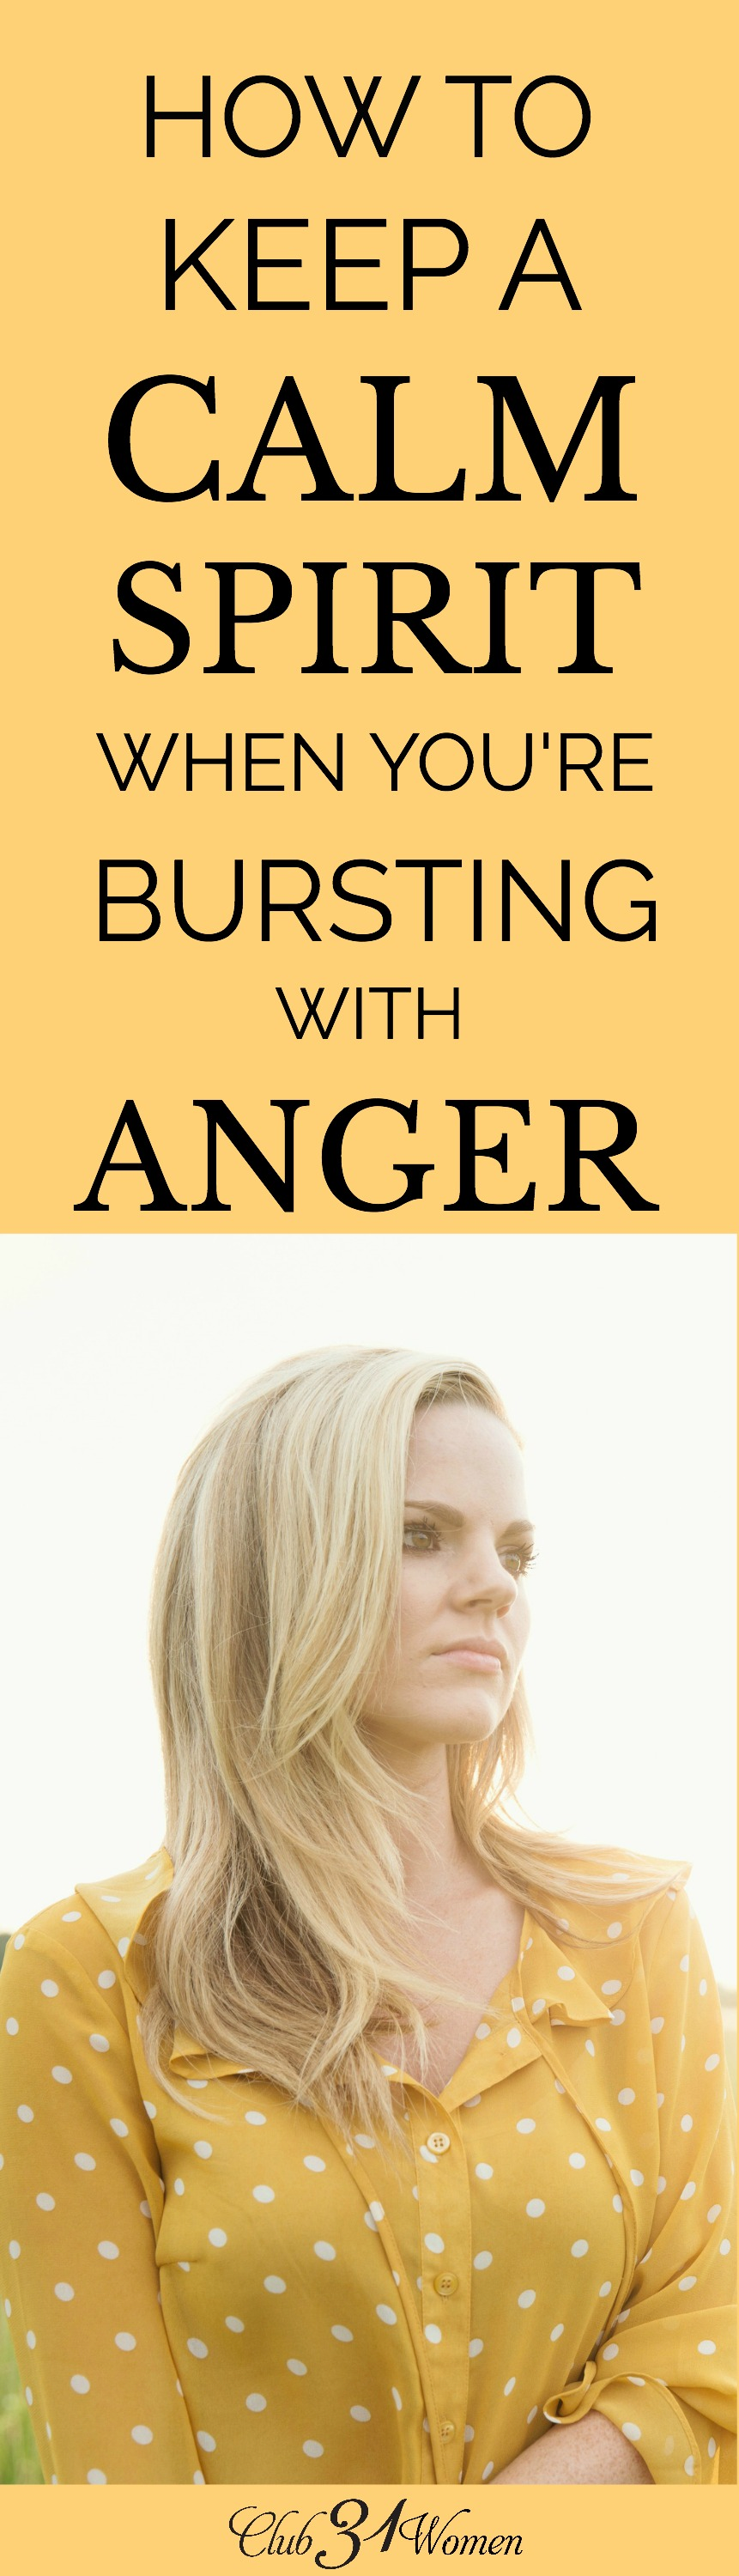 Anger isn't a sin until we allow it to overtake us. Here are some practical steps to walk through in order to handle anger with wisdom and grace. via @Club31Women